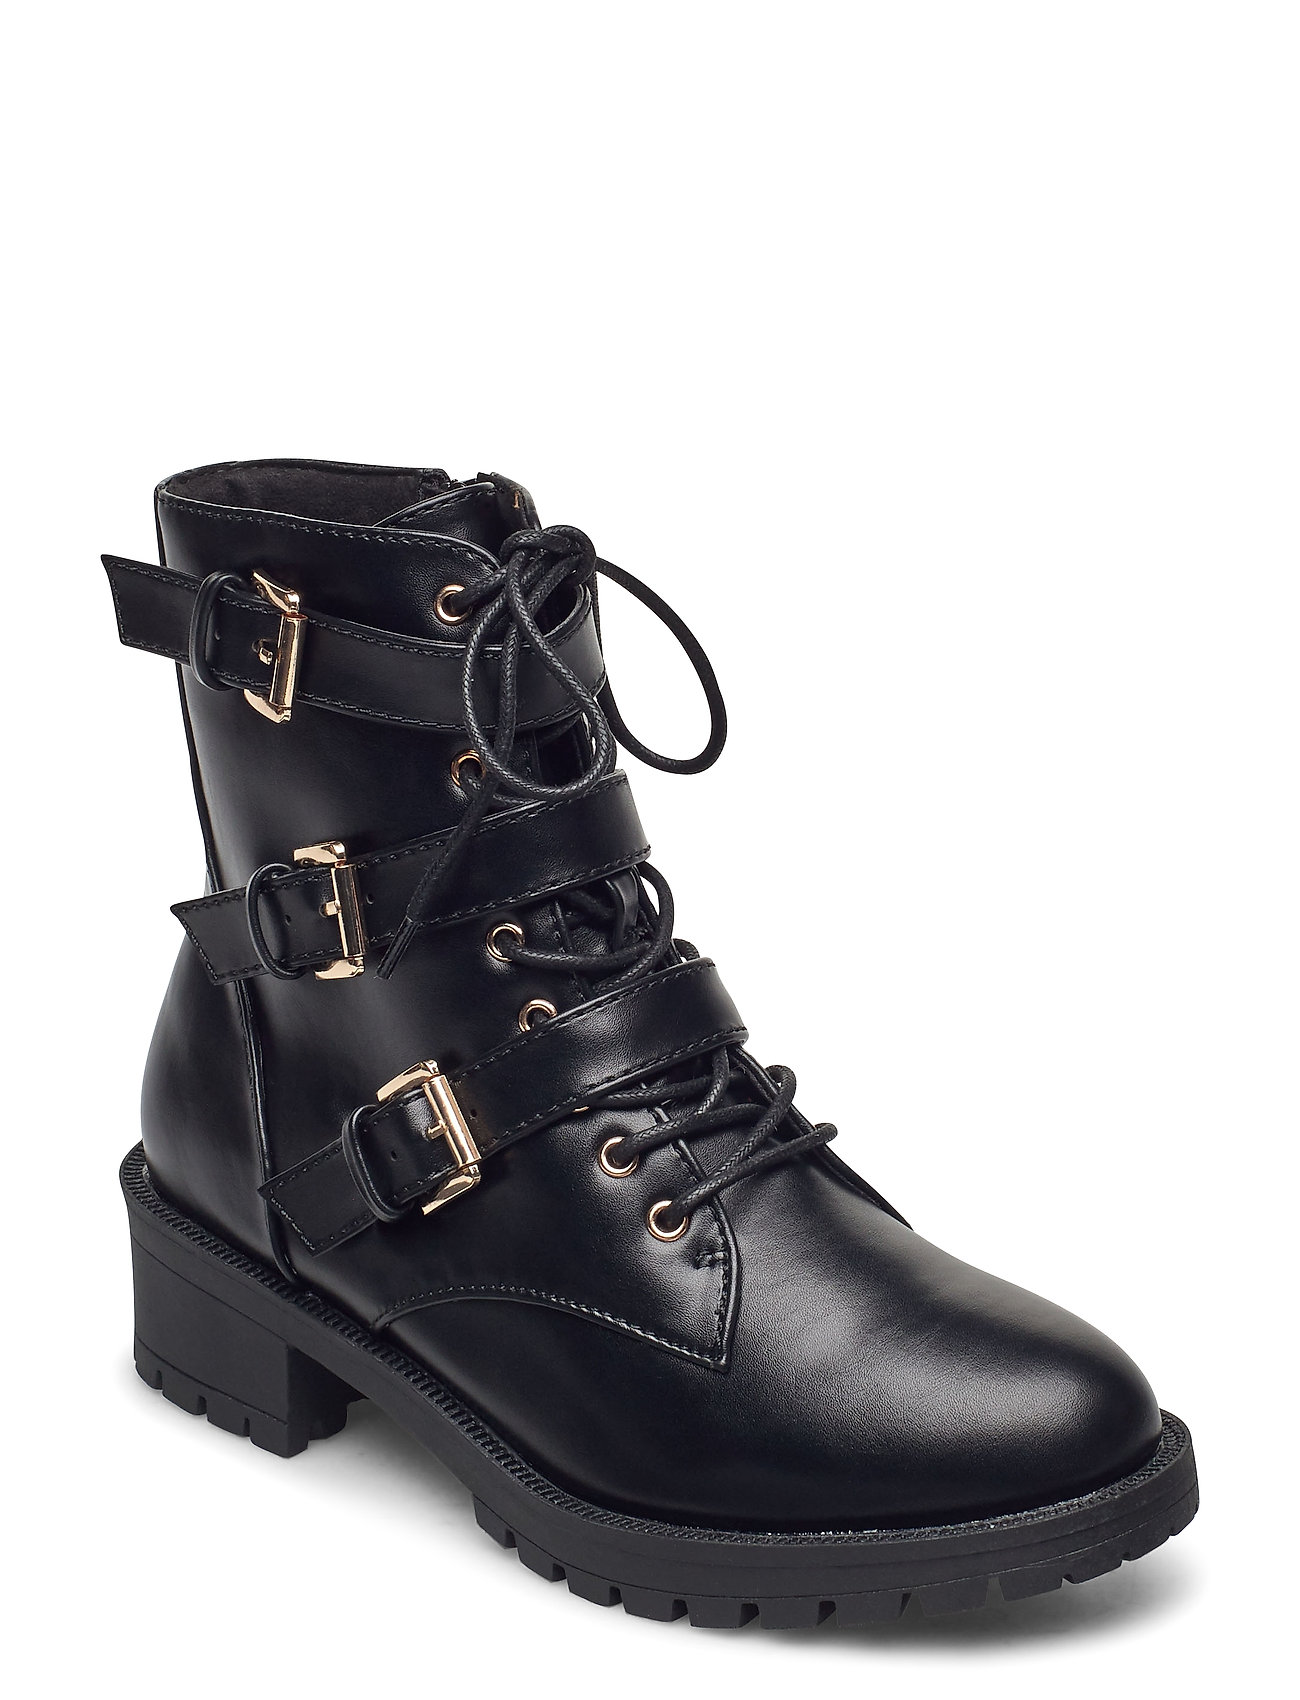 Image of Biaclaire Basic Biker Boot Shoes Boots Ankle Boots Ankle Boot - Heel Sort Bianco (3437801947)